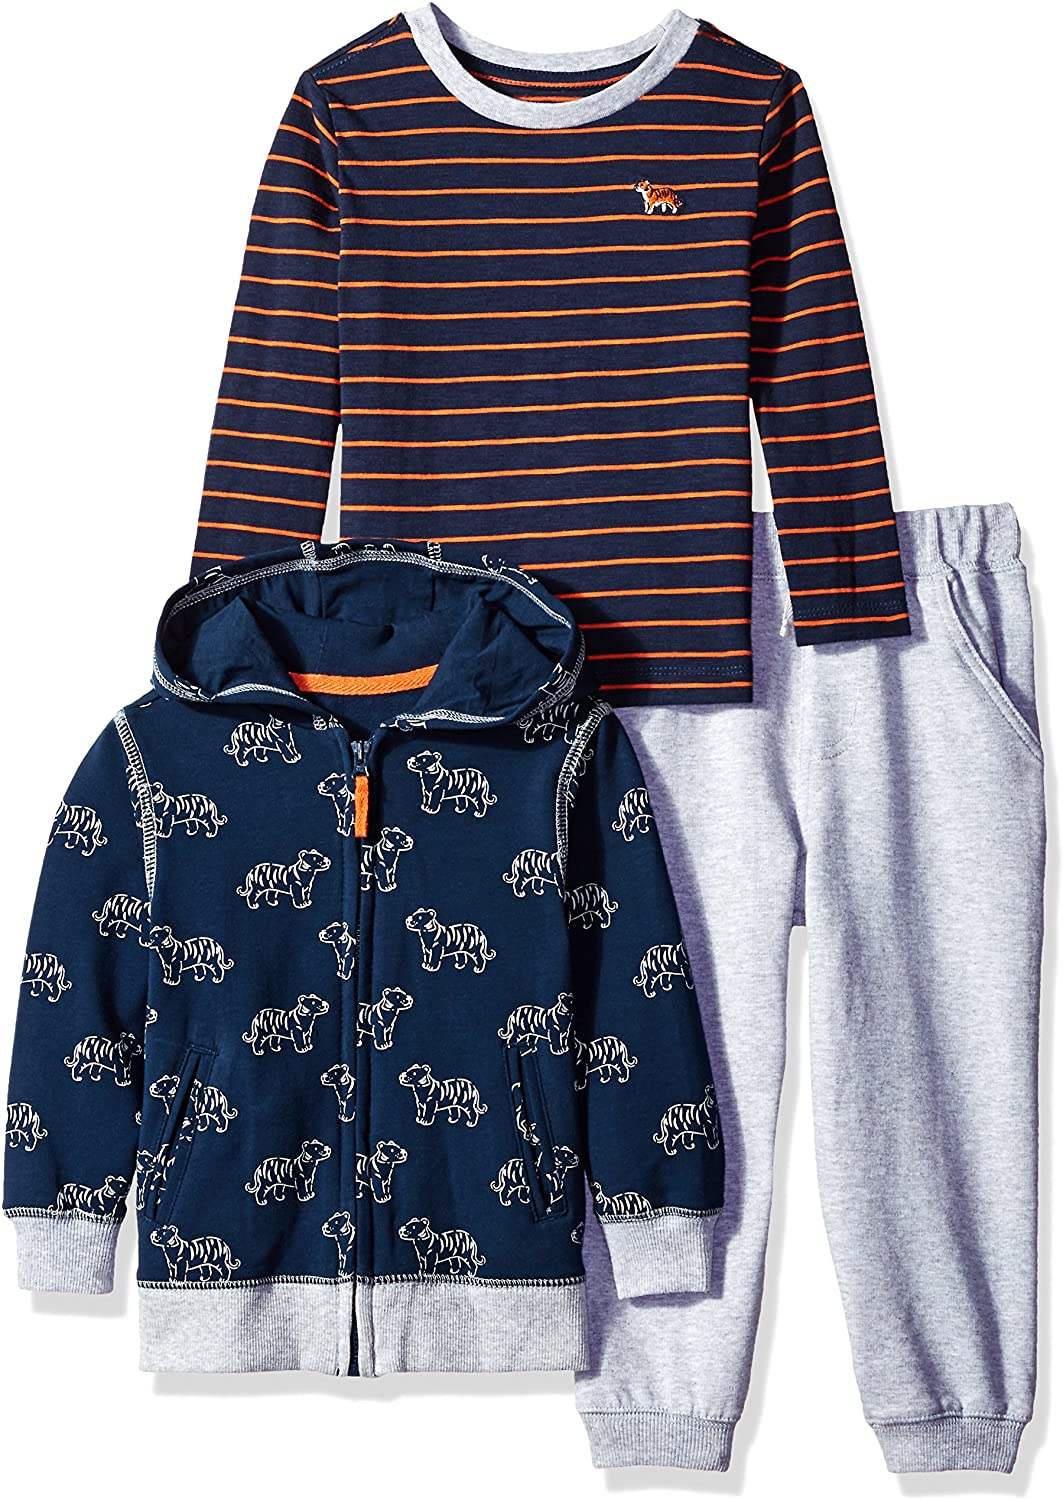 Little Me Toddler Baby Boys' 3 Piece Hooded Jacket Set